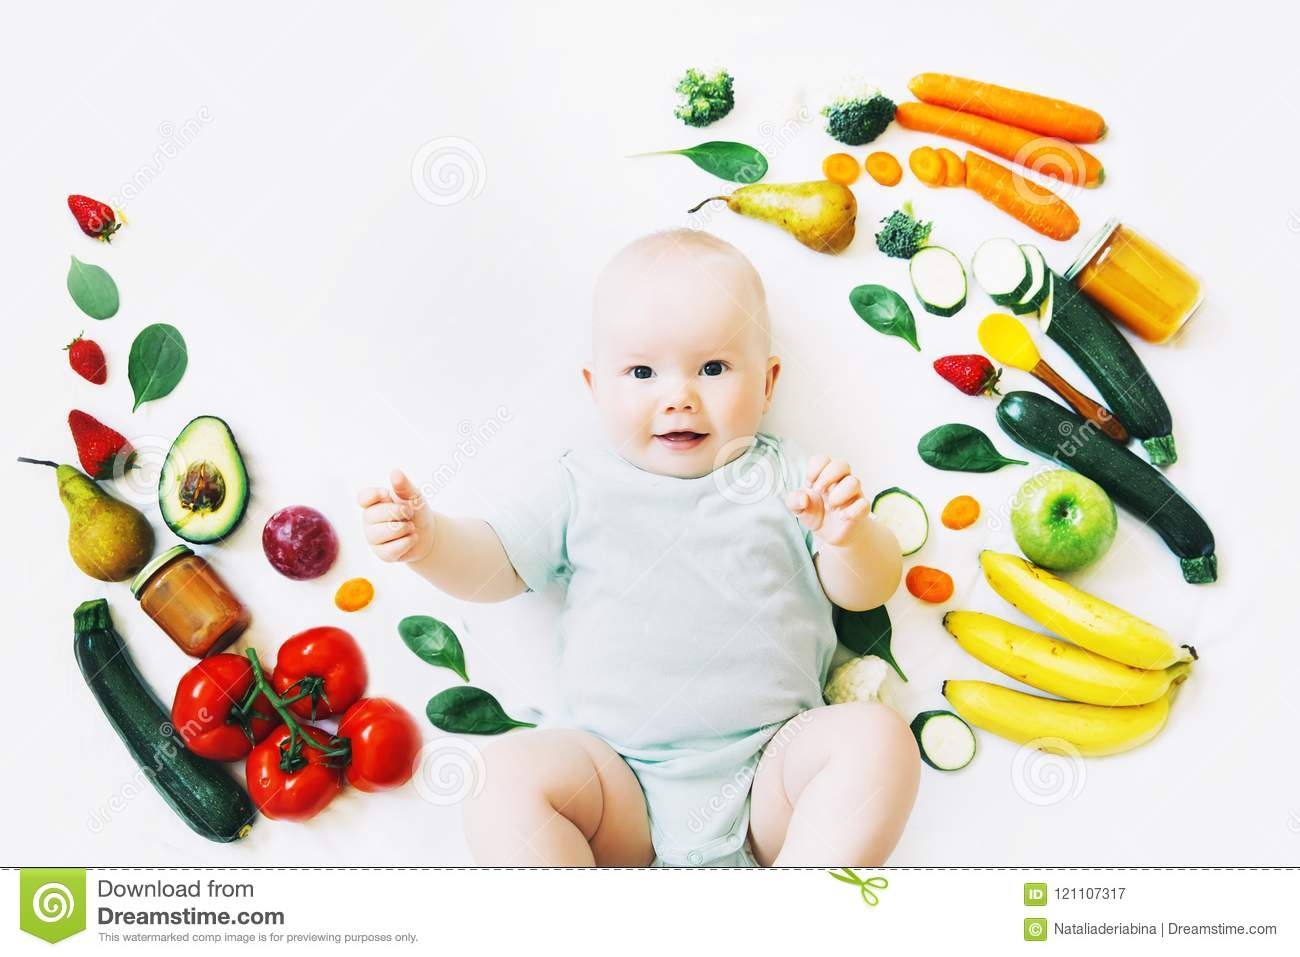 Best Baby Toys For 8 Months Old : Healthy baby child nutrition food background top view. stock image